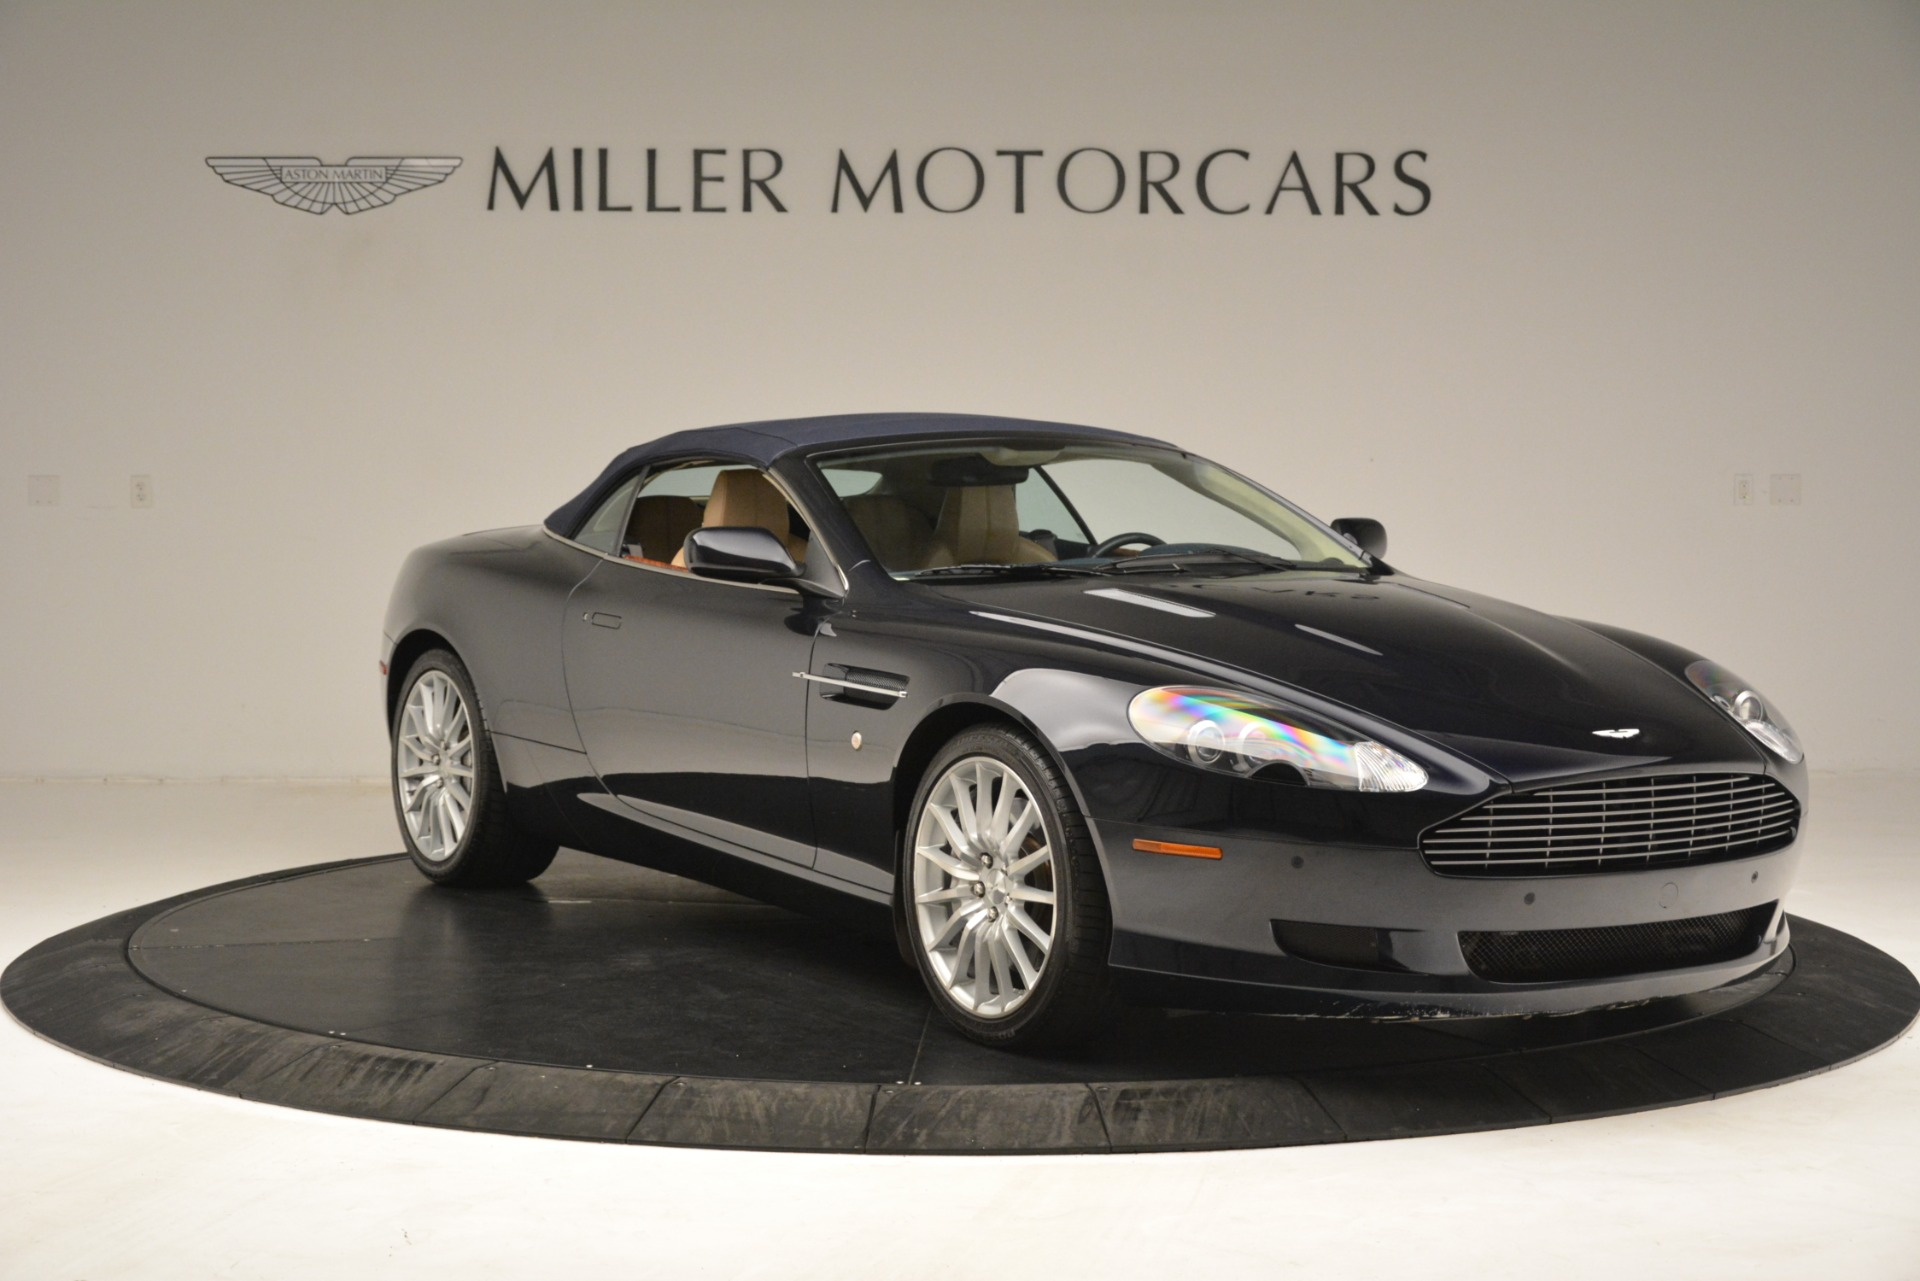 Used 2007 Aston Martin DB9 Convertible For Sale In Westport, CT 3291_p31